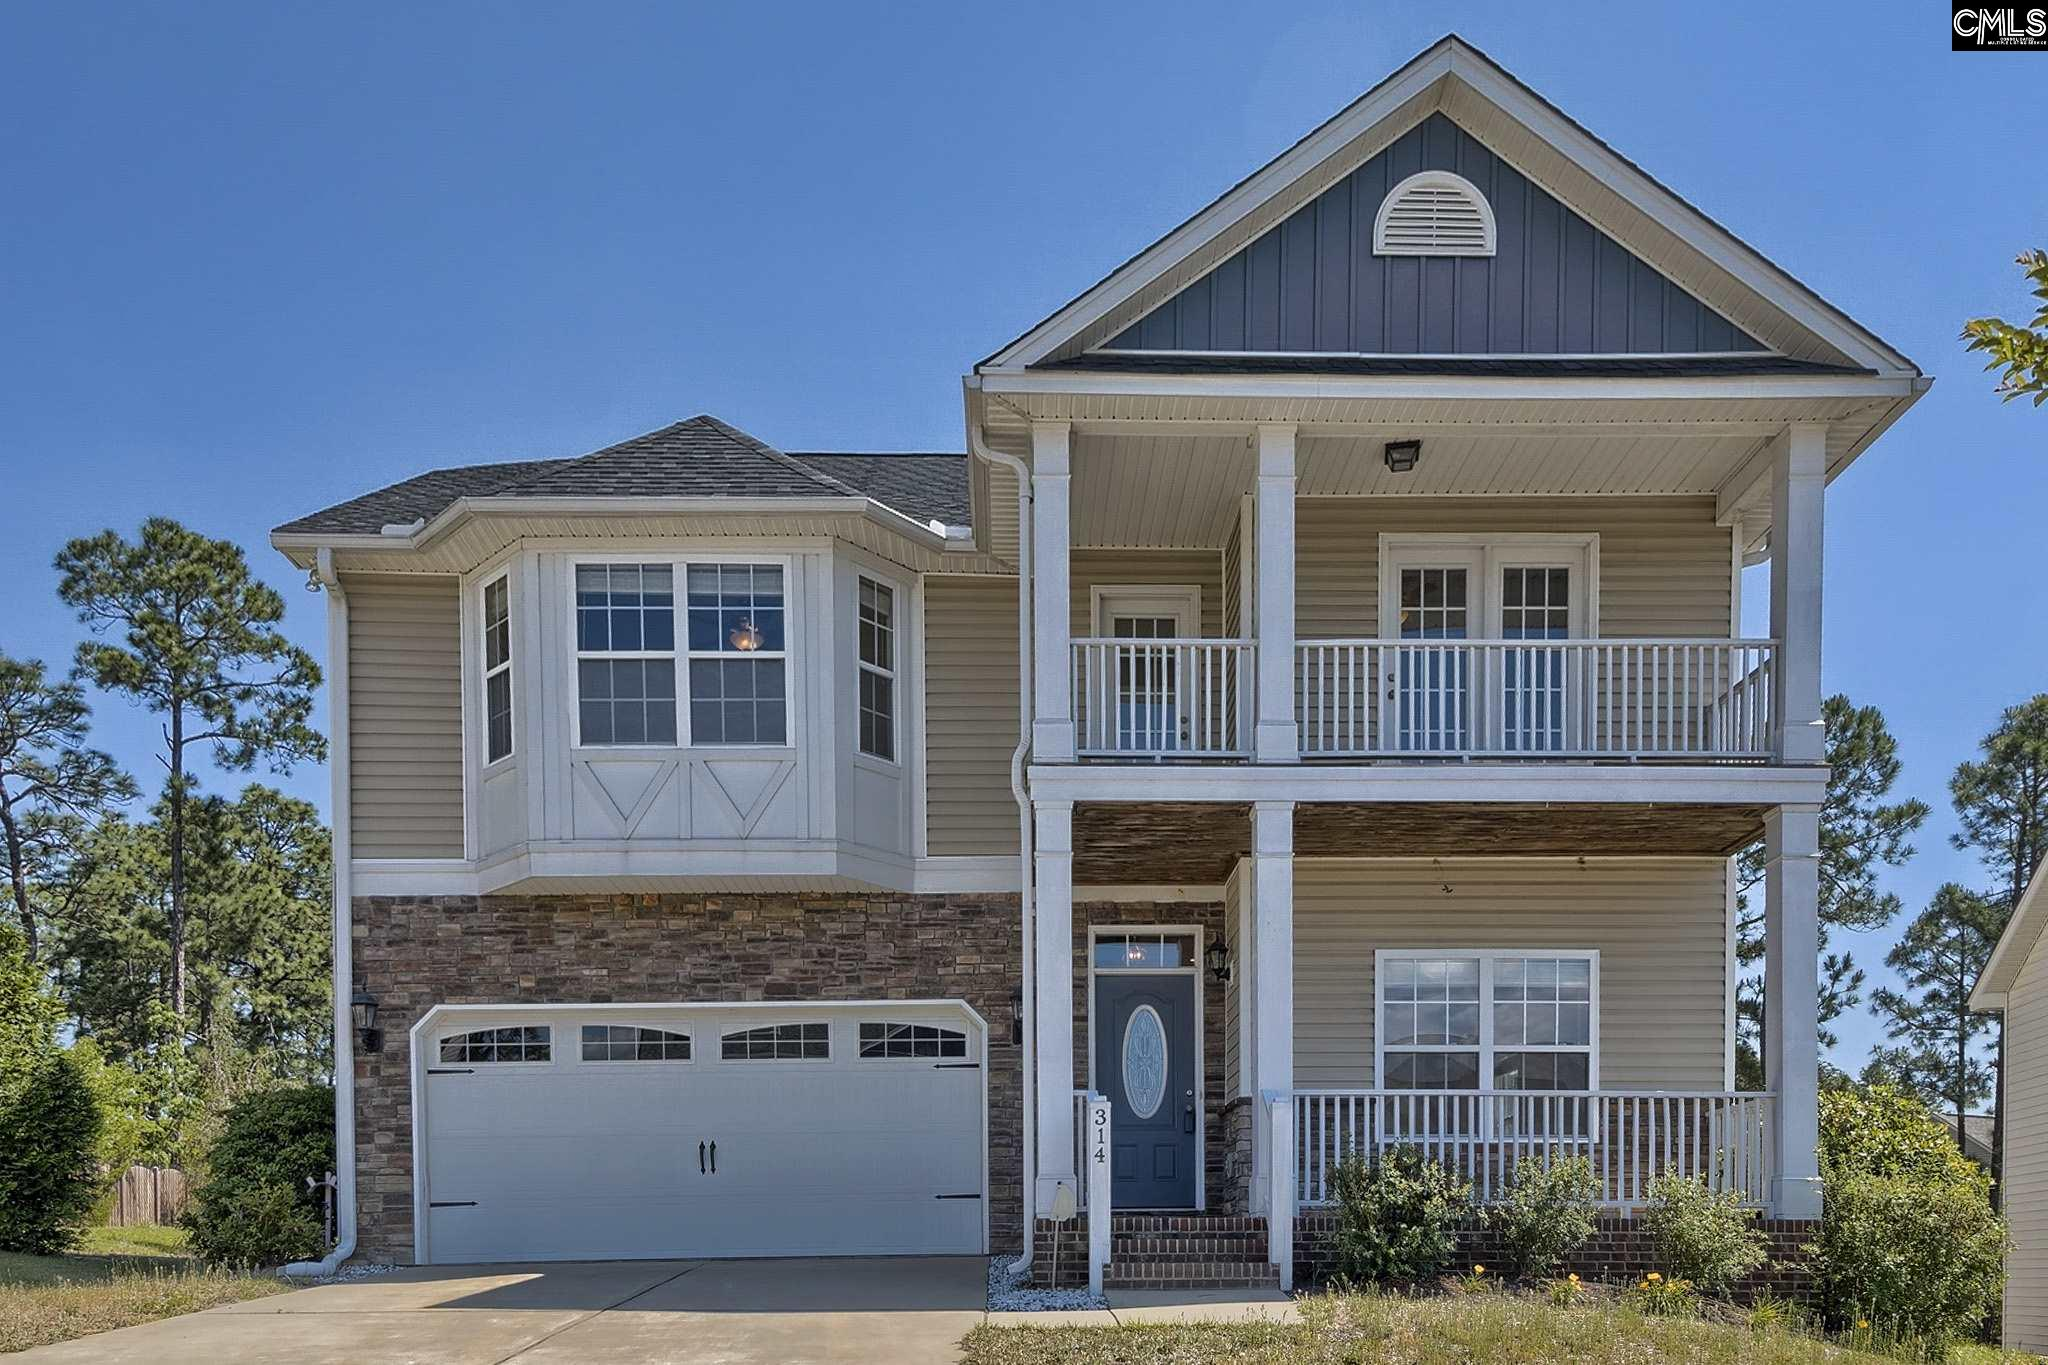 314 Ashburton West Columbia, SC 29170